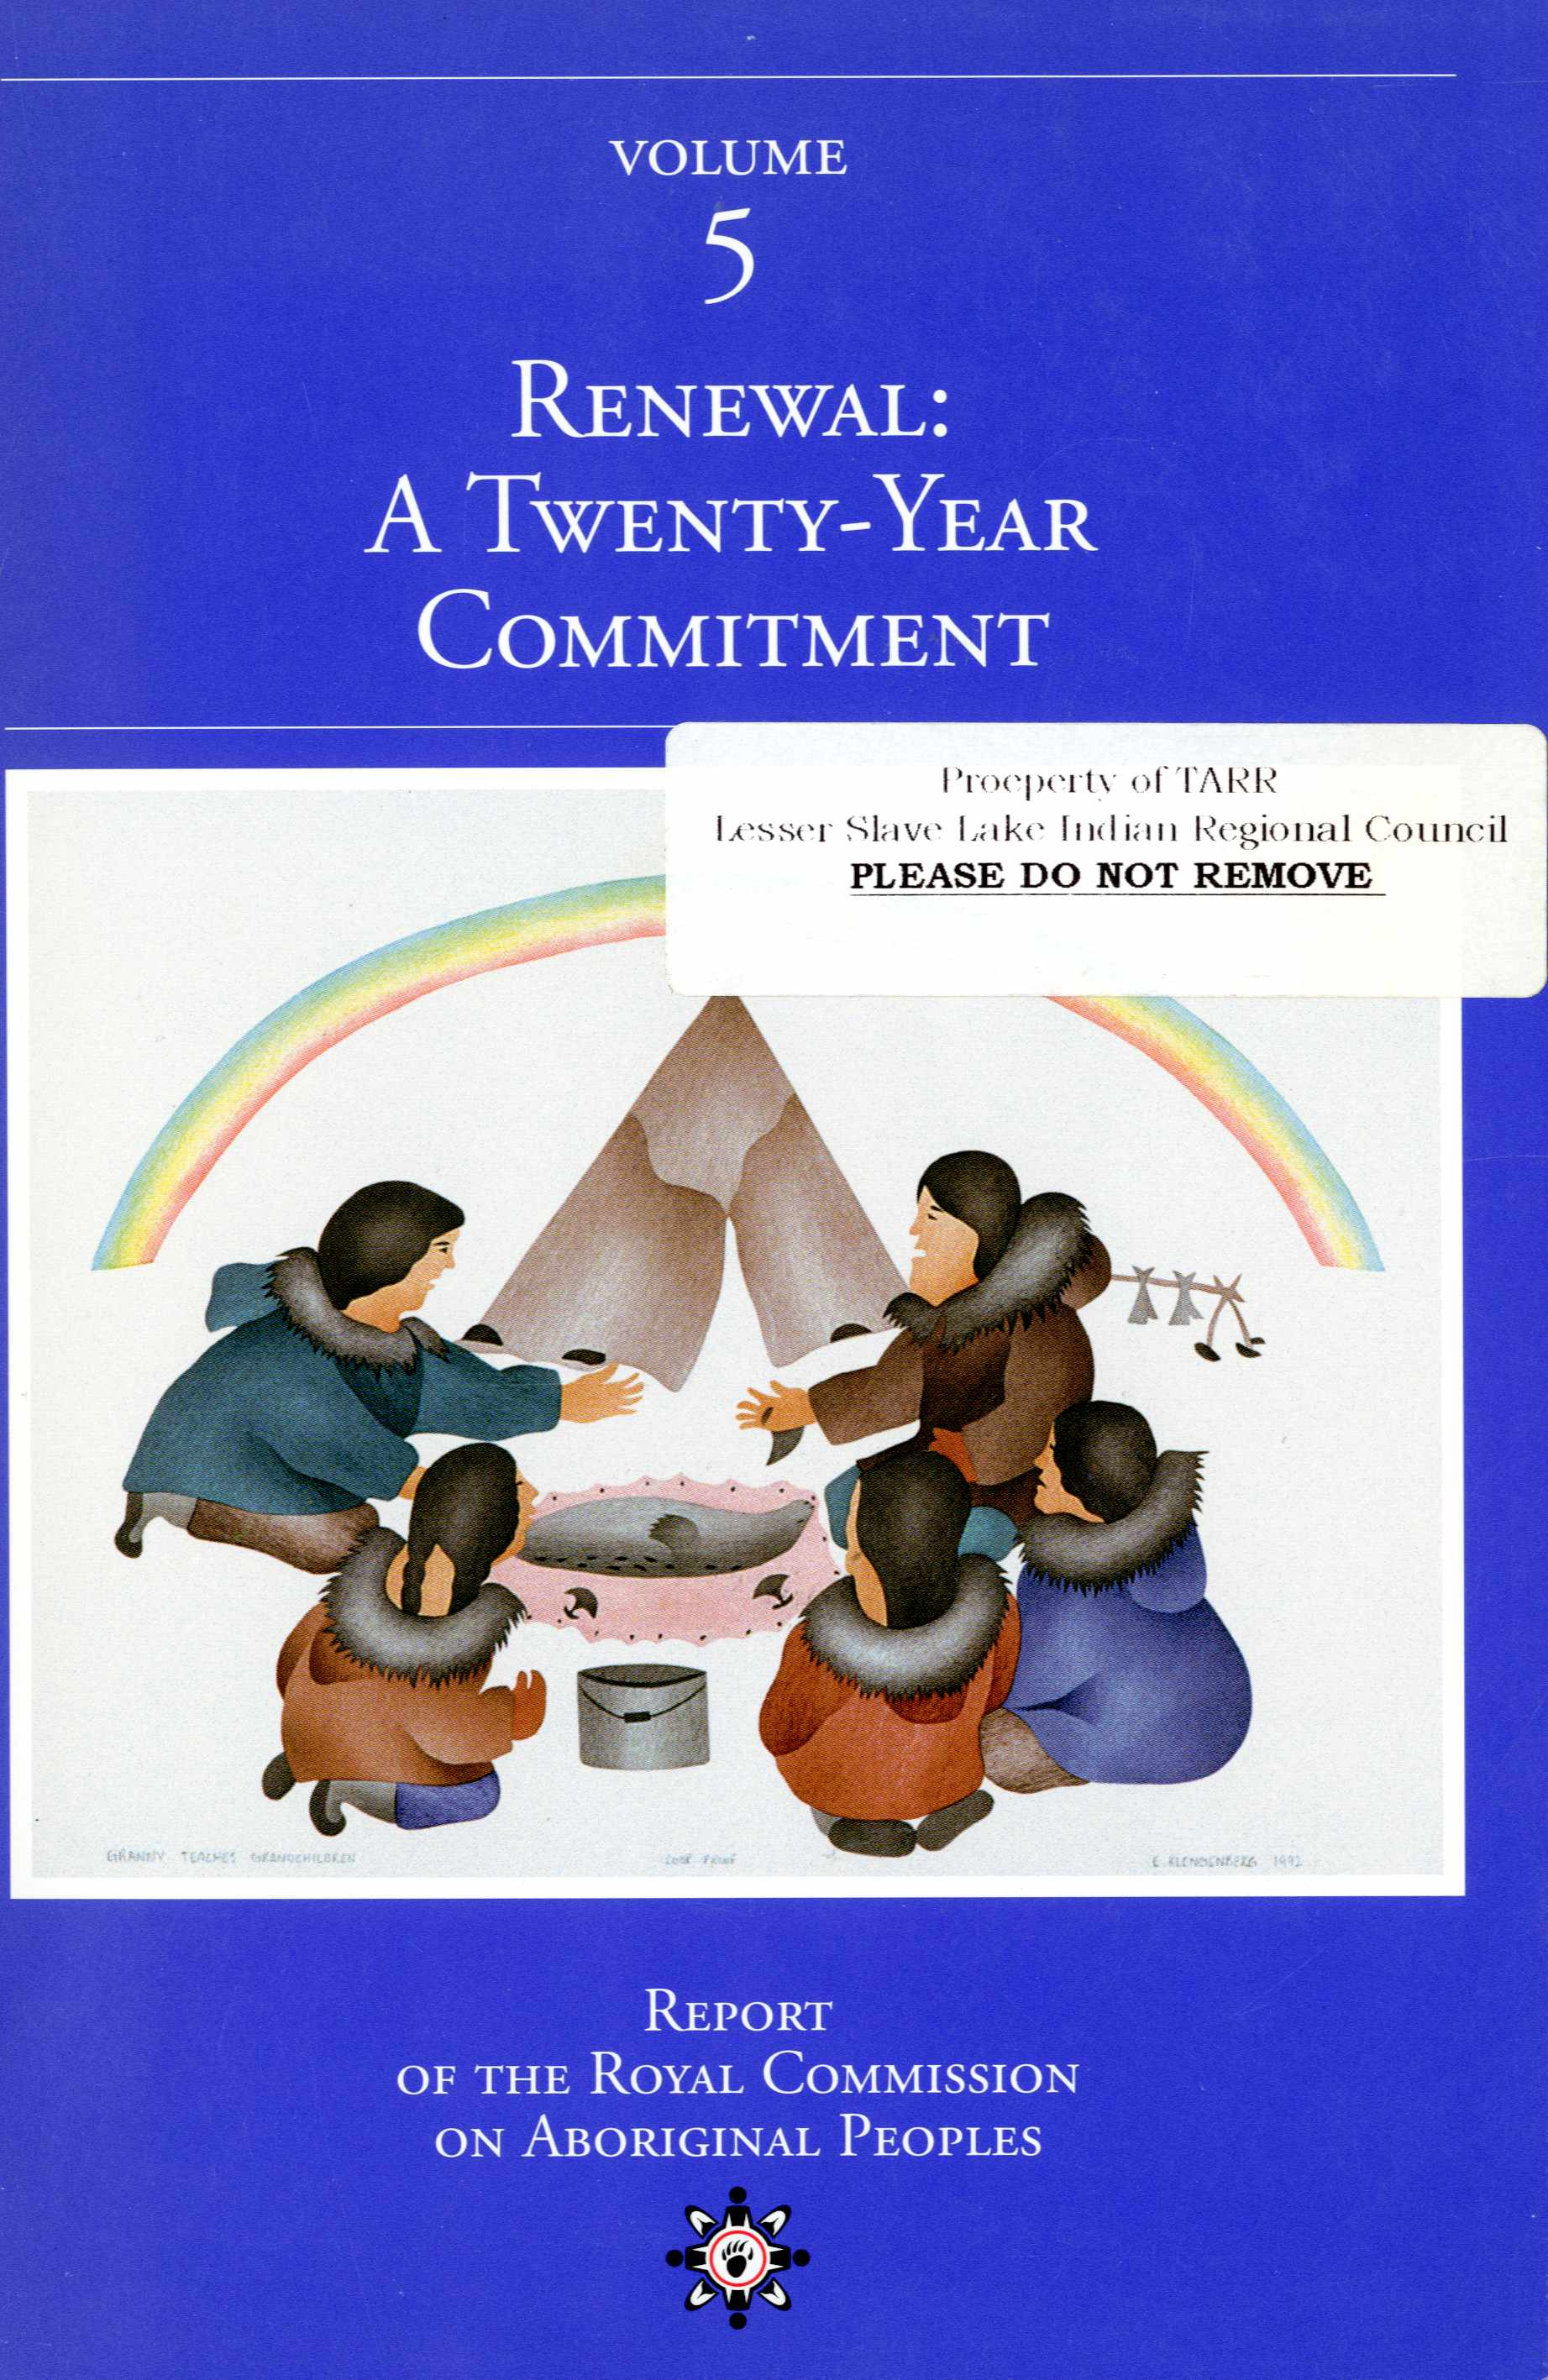 Renewal: A Twenty-Year Commitment Image